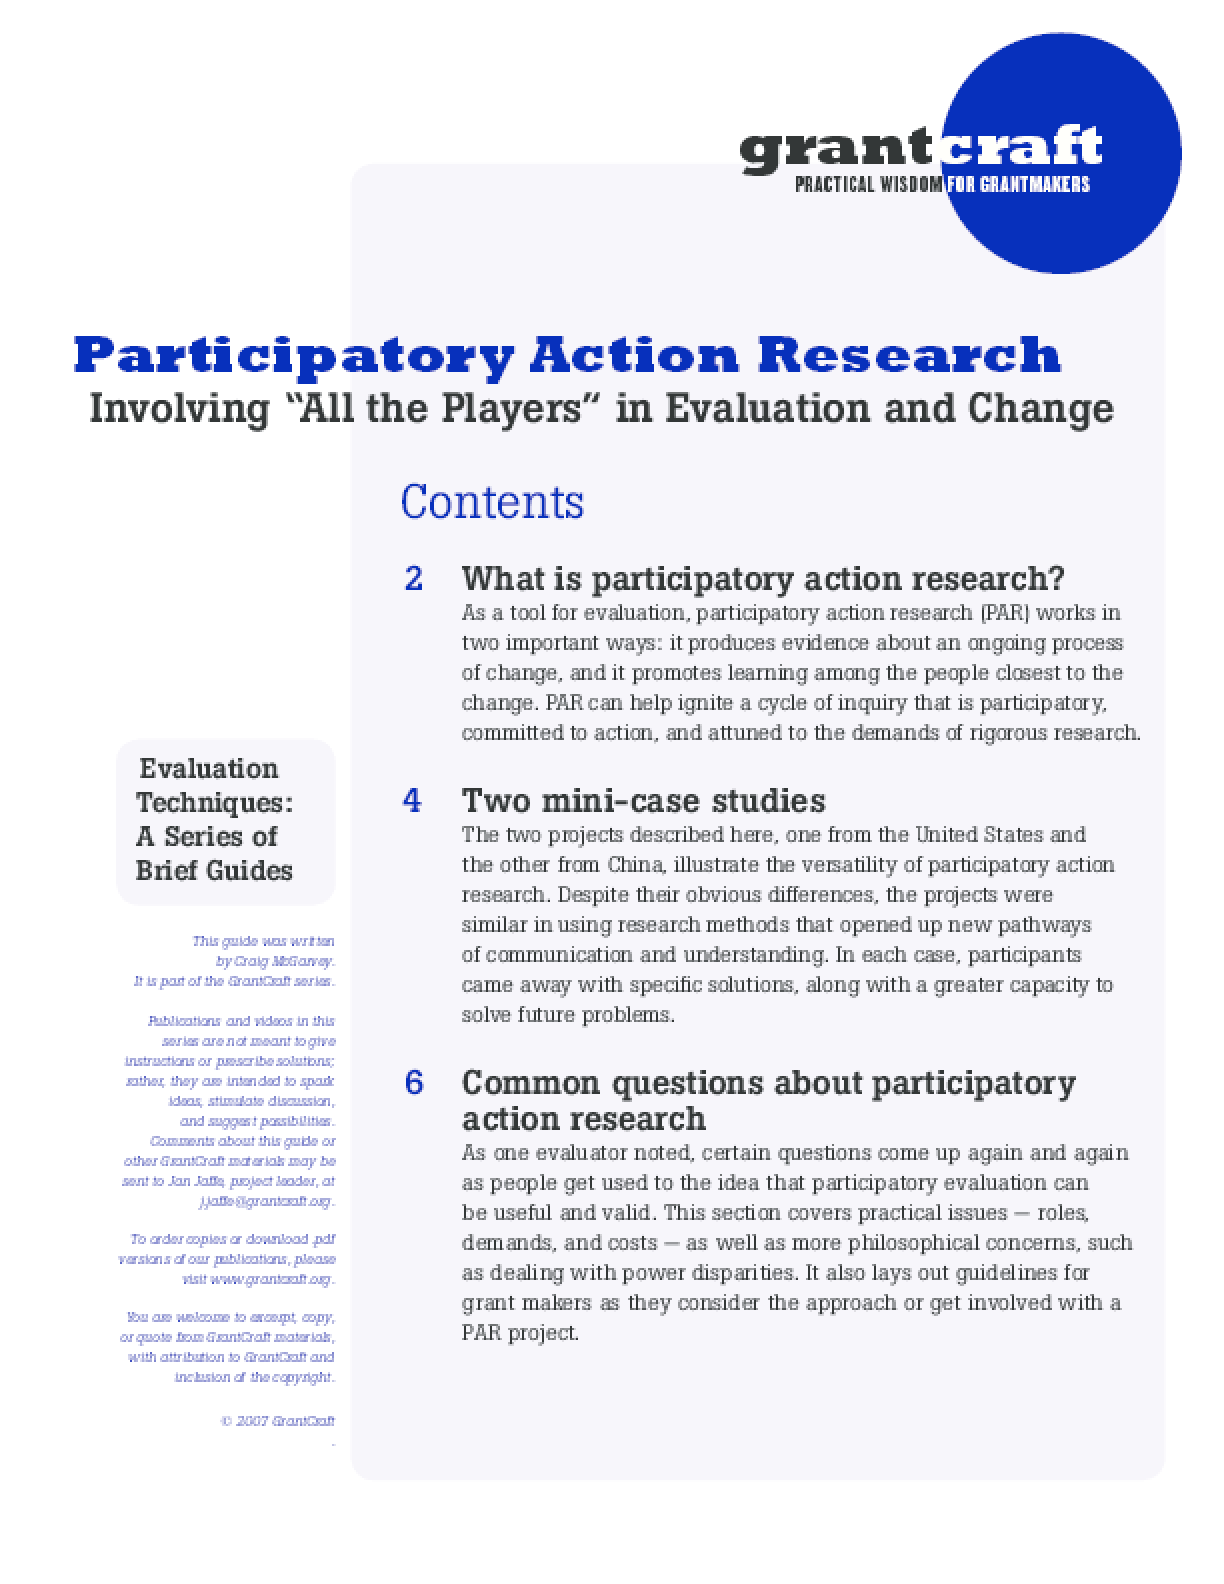 Participatory Action Research: Involving All the Players in Evaluation and Change